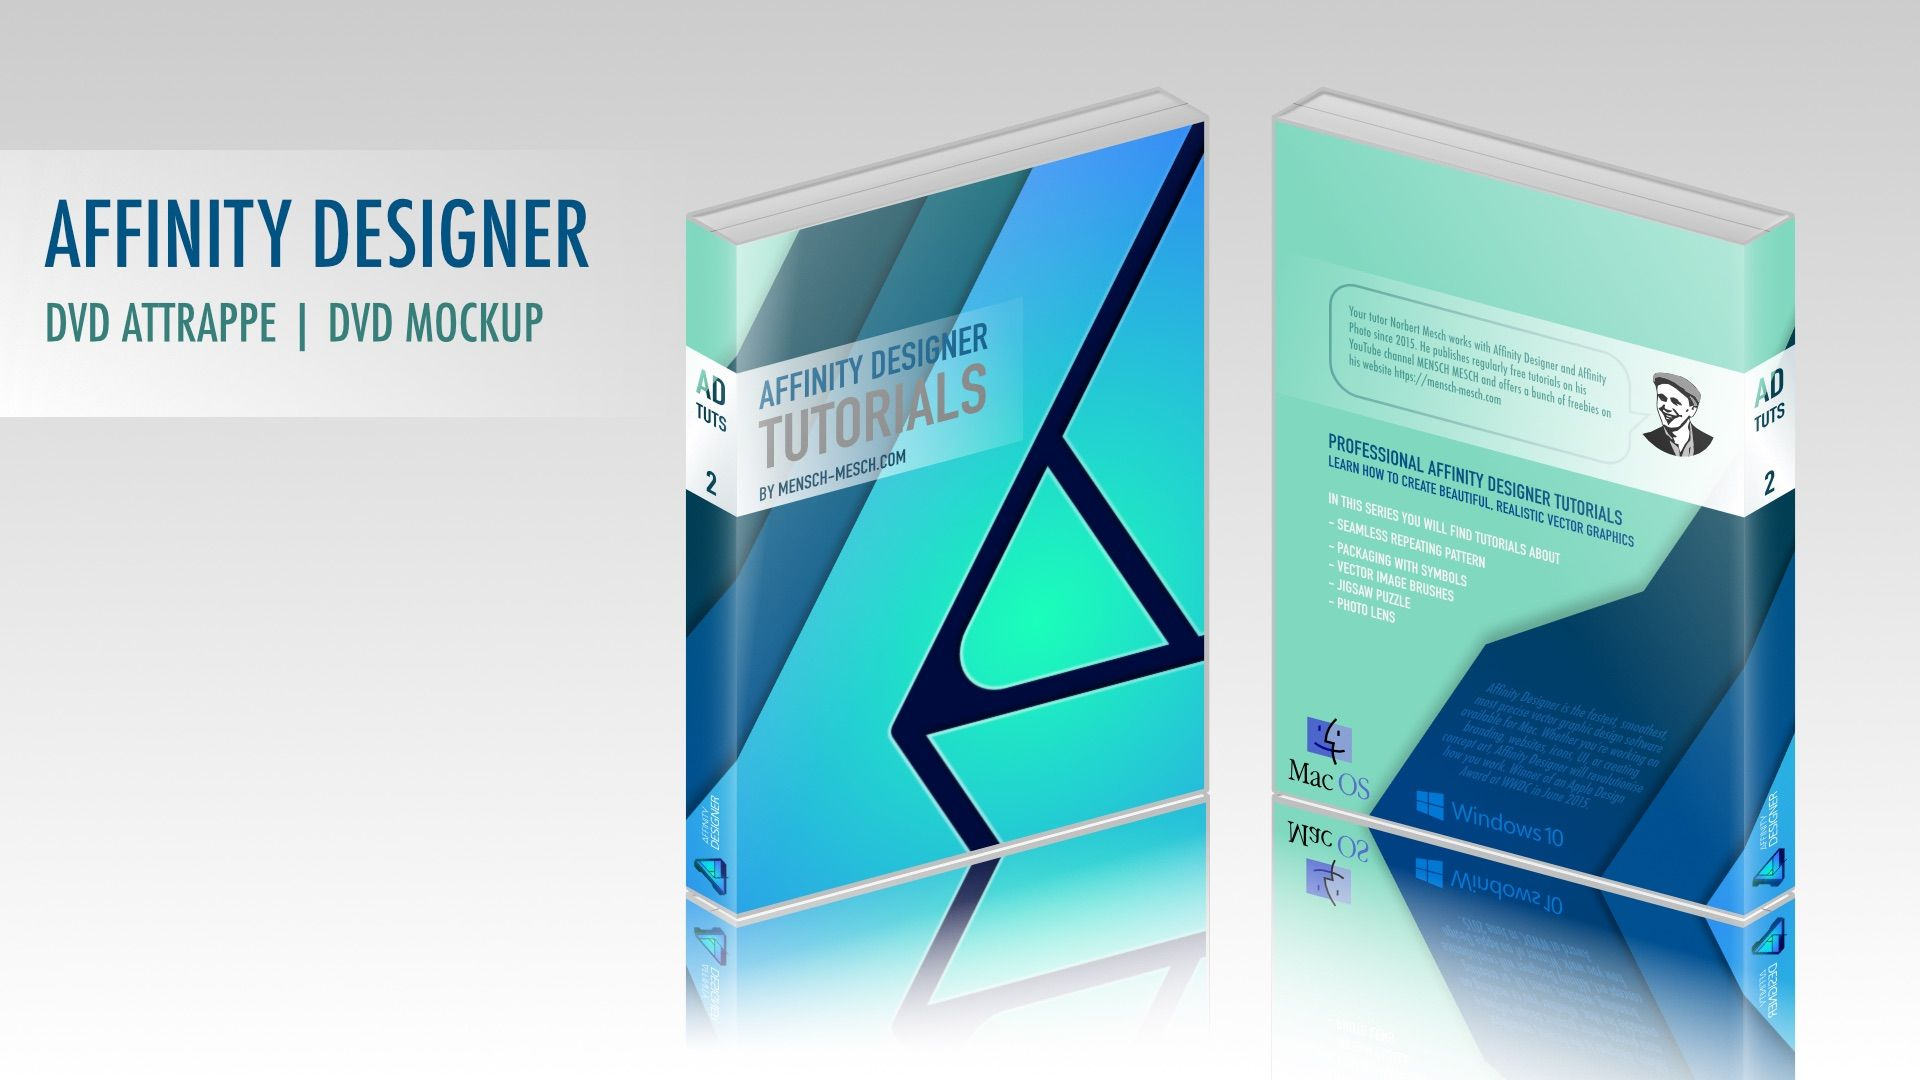 02 AD UR – DVD Hülle Attrappe   DVD Cover Mockup  In this Affinity Designer user request (AD UR), I show you how to create a mockup of a DVD cover in Affinity Designer 1.5.5.